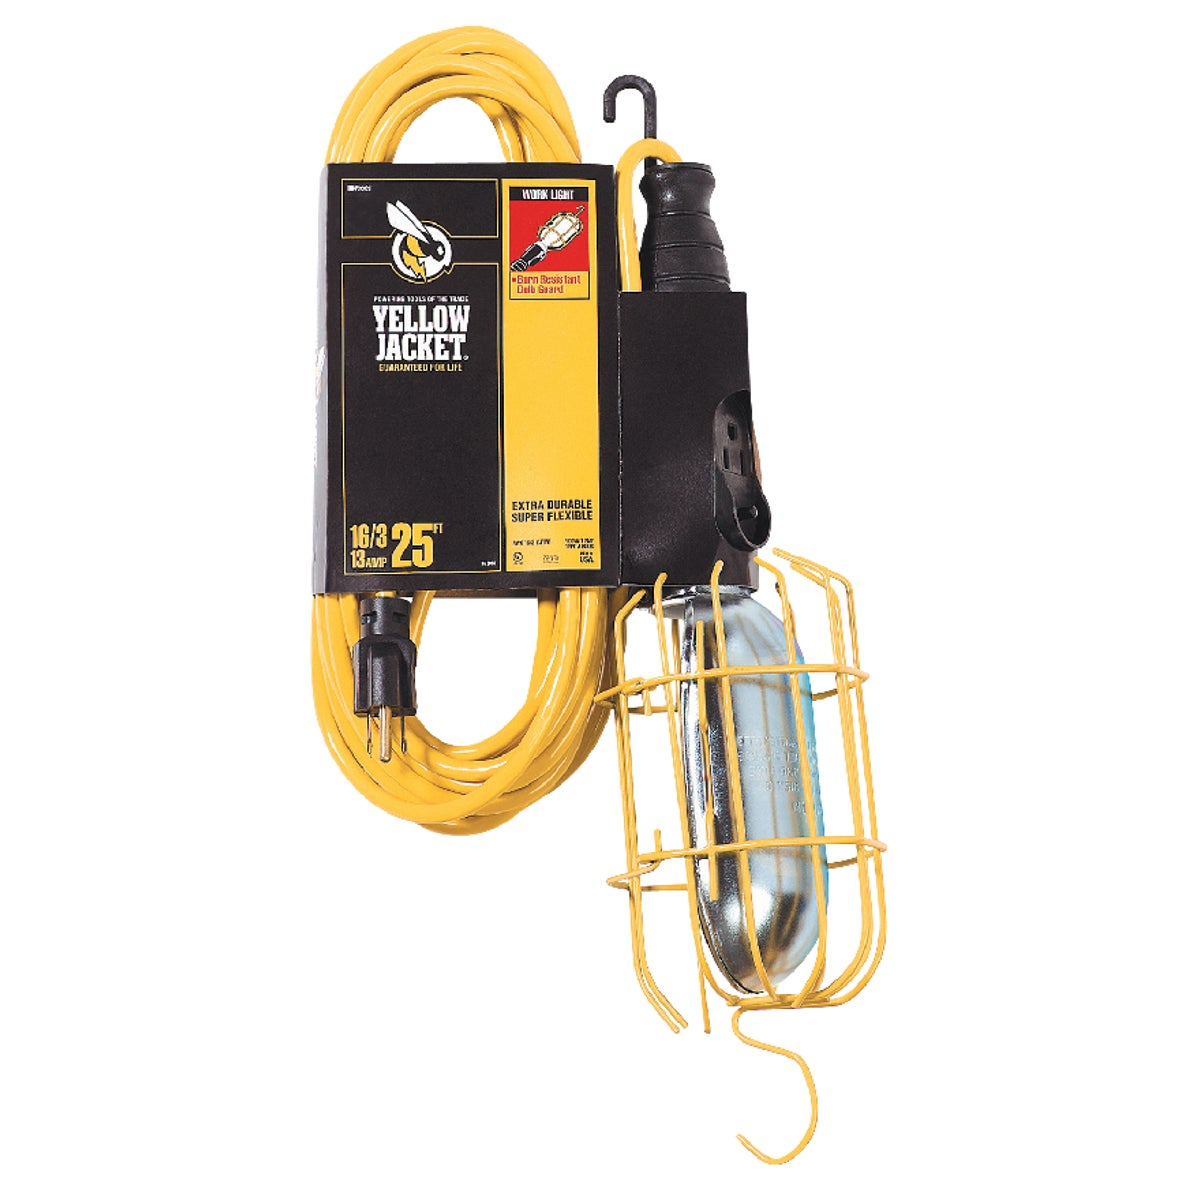 25' 16/3 WORKLIGHT - 2893 by Woods Wire Coleman